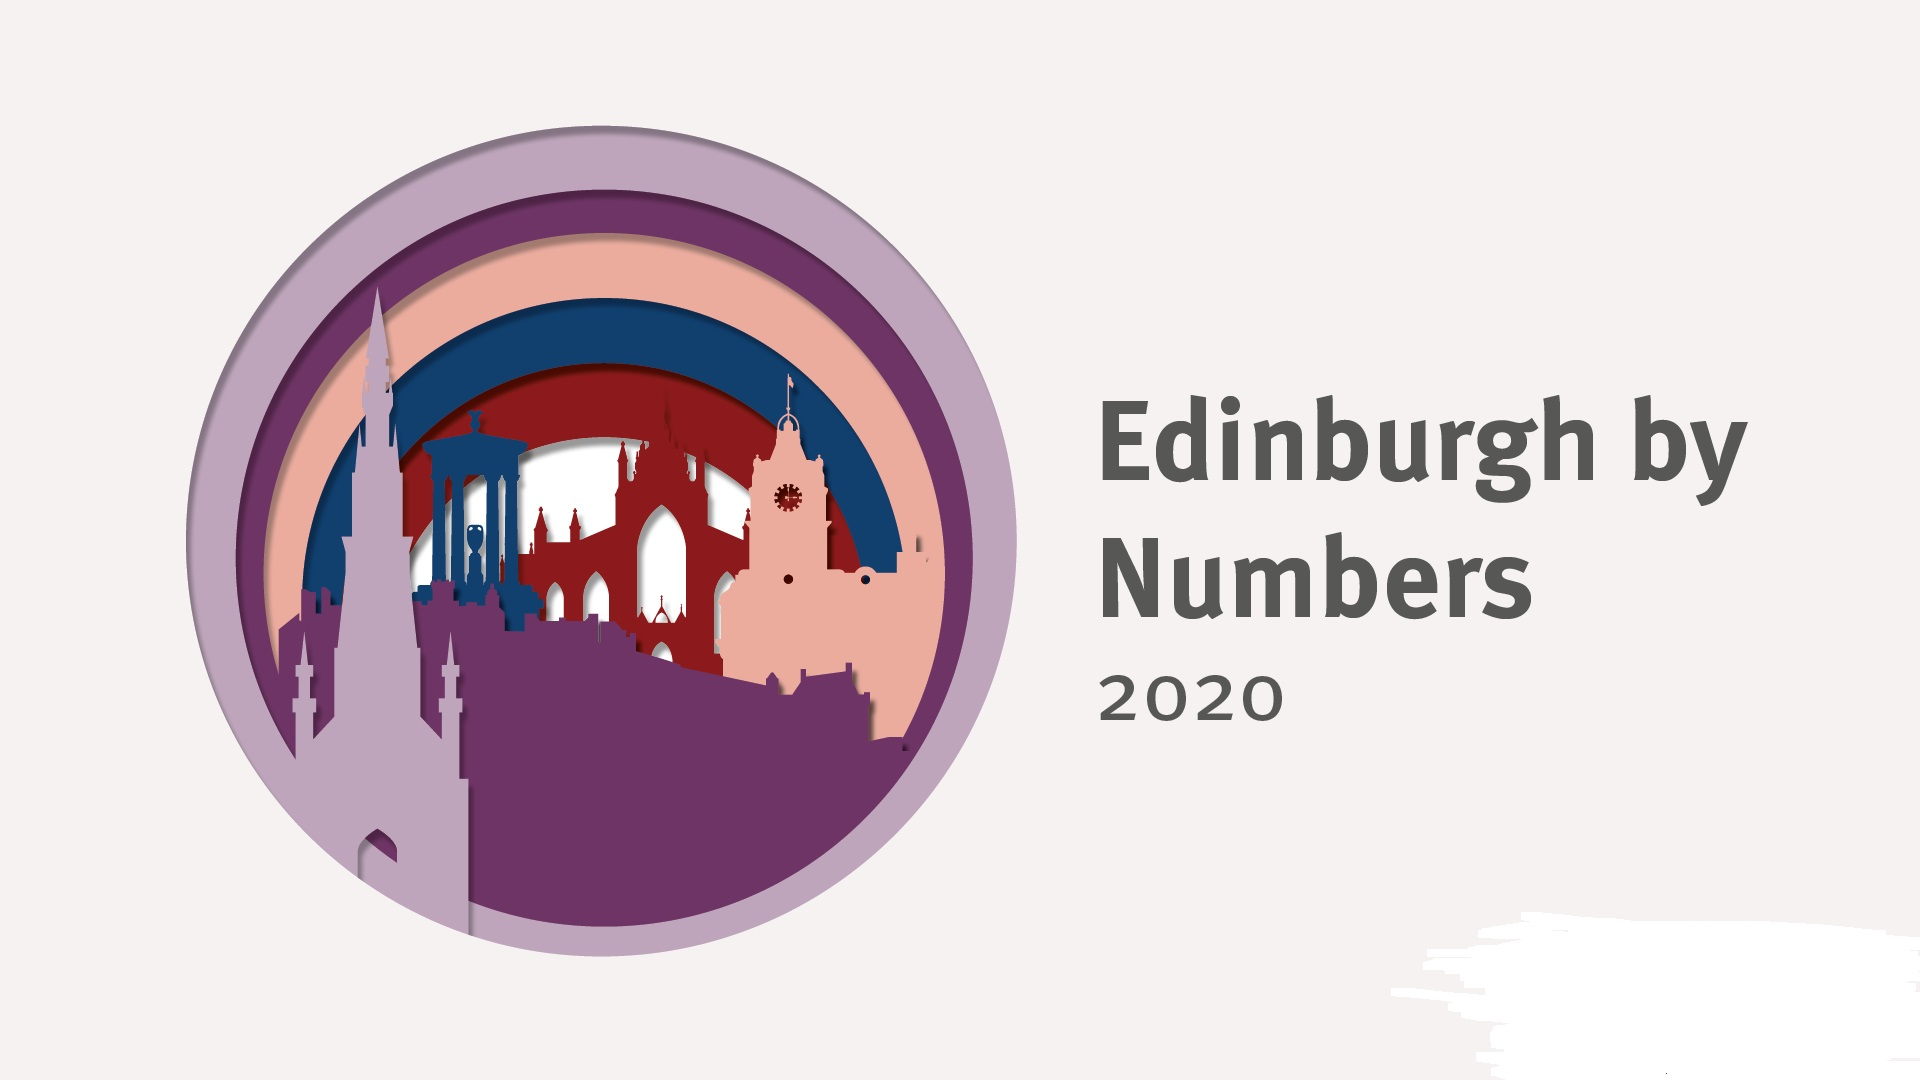 Edinburgh by Numbers logo